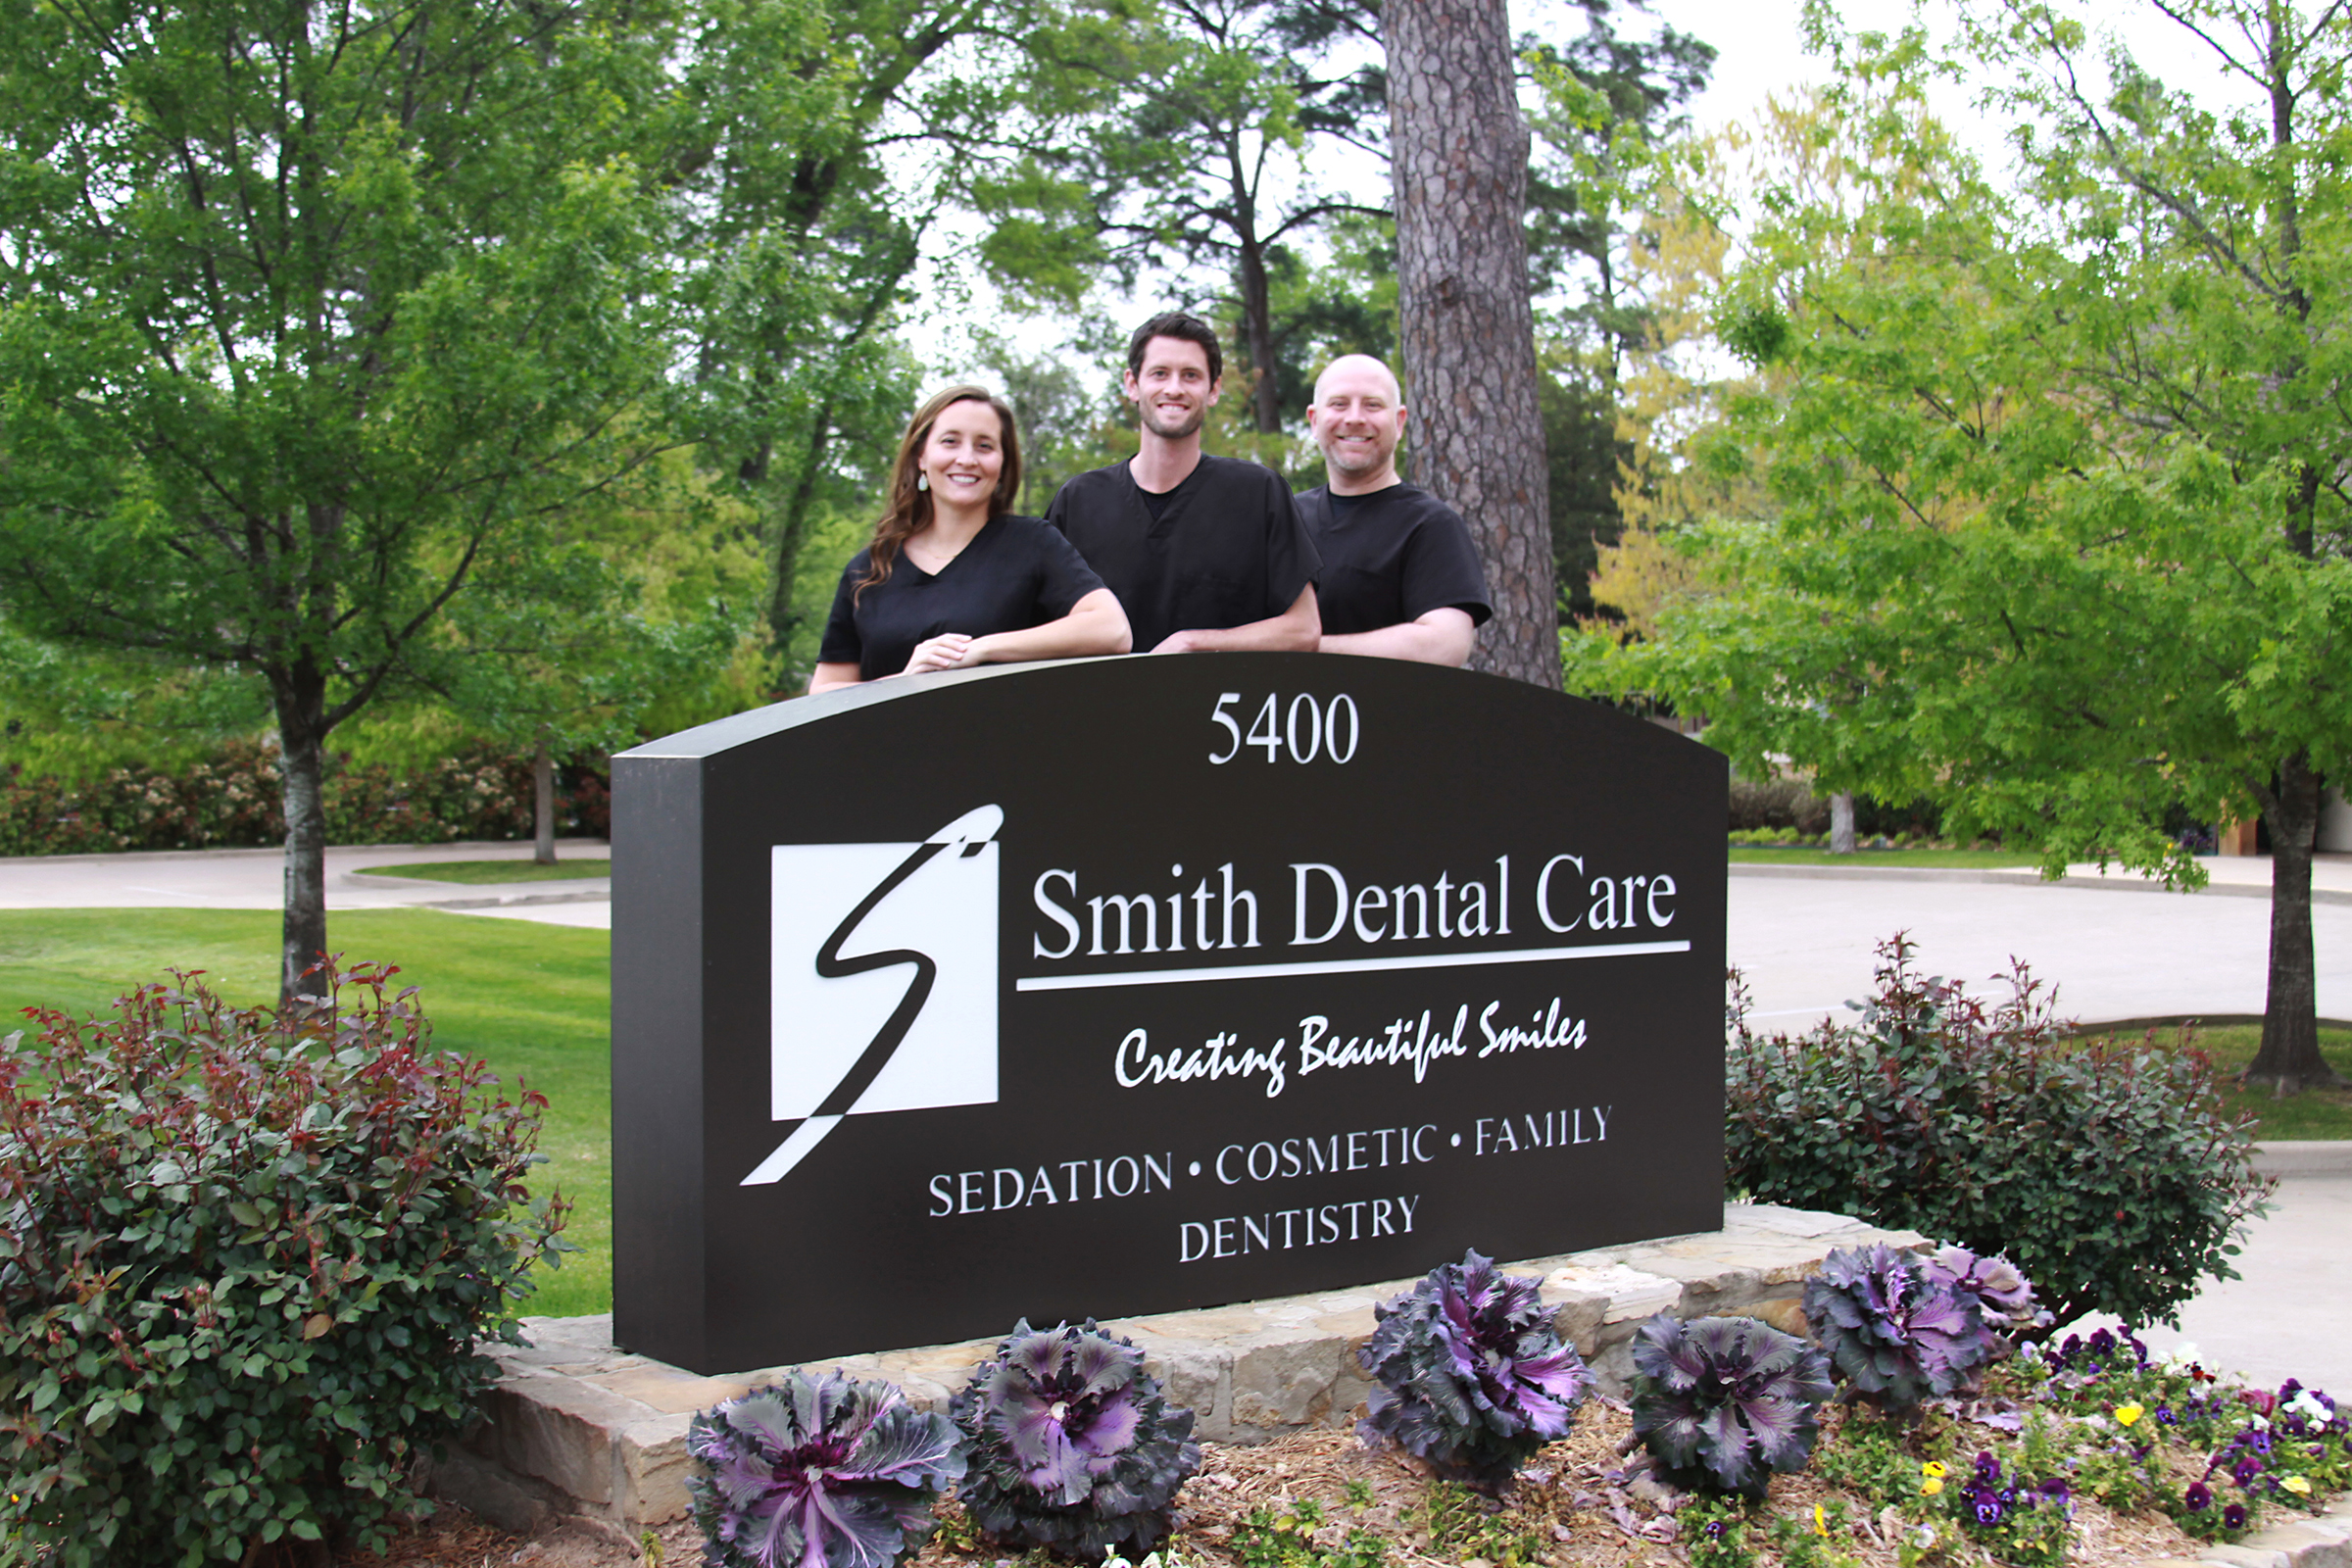 Smith Dental Care 5400 New Copeland Rd Tyler Tx 75703